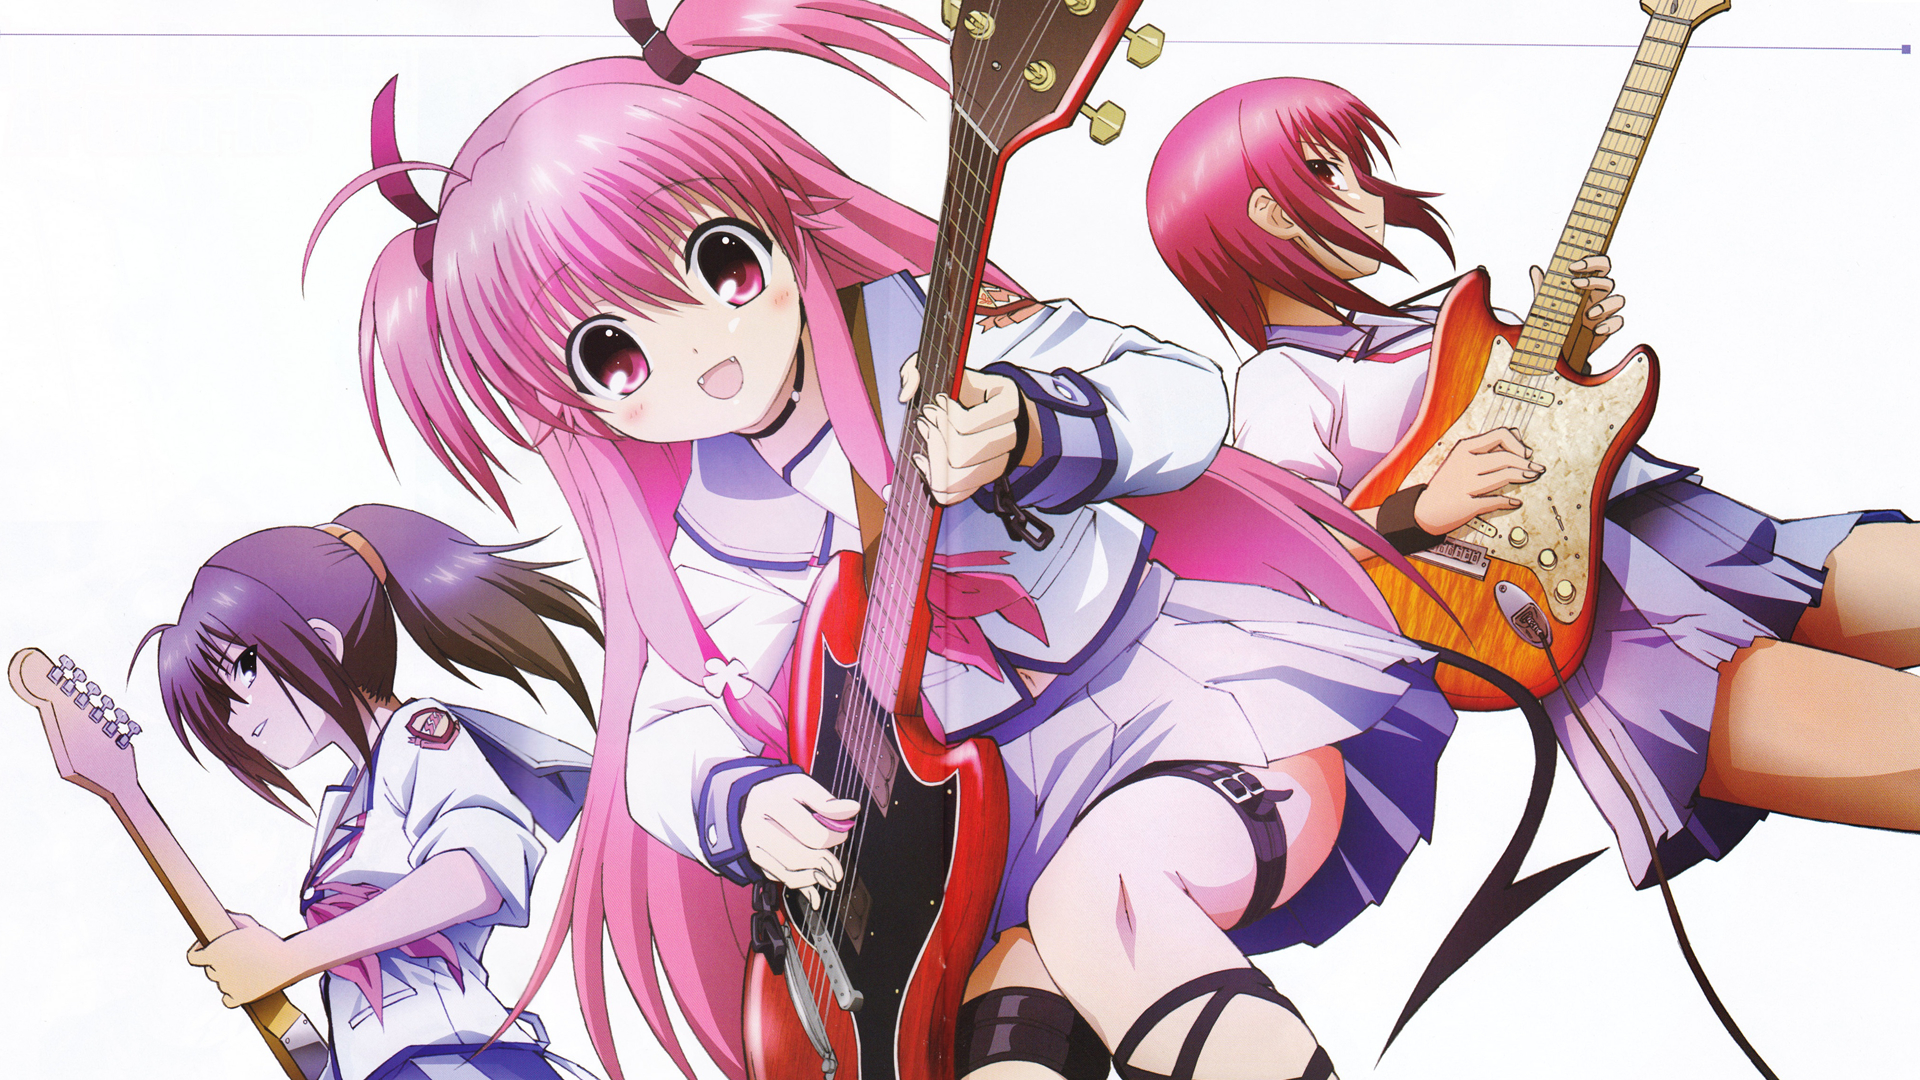 angel beats Hisako yui HD Wallpaper